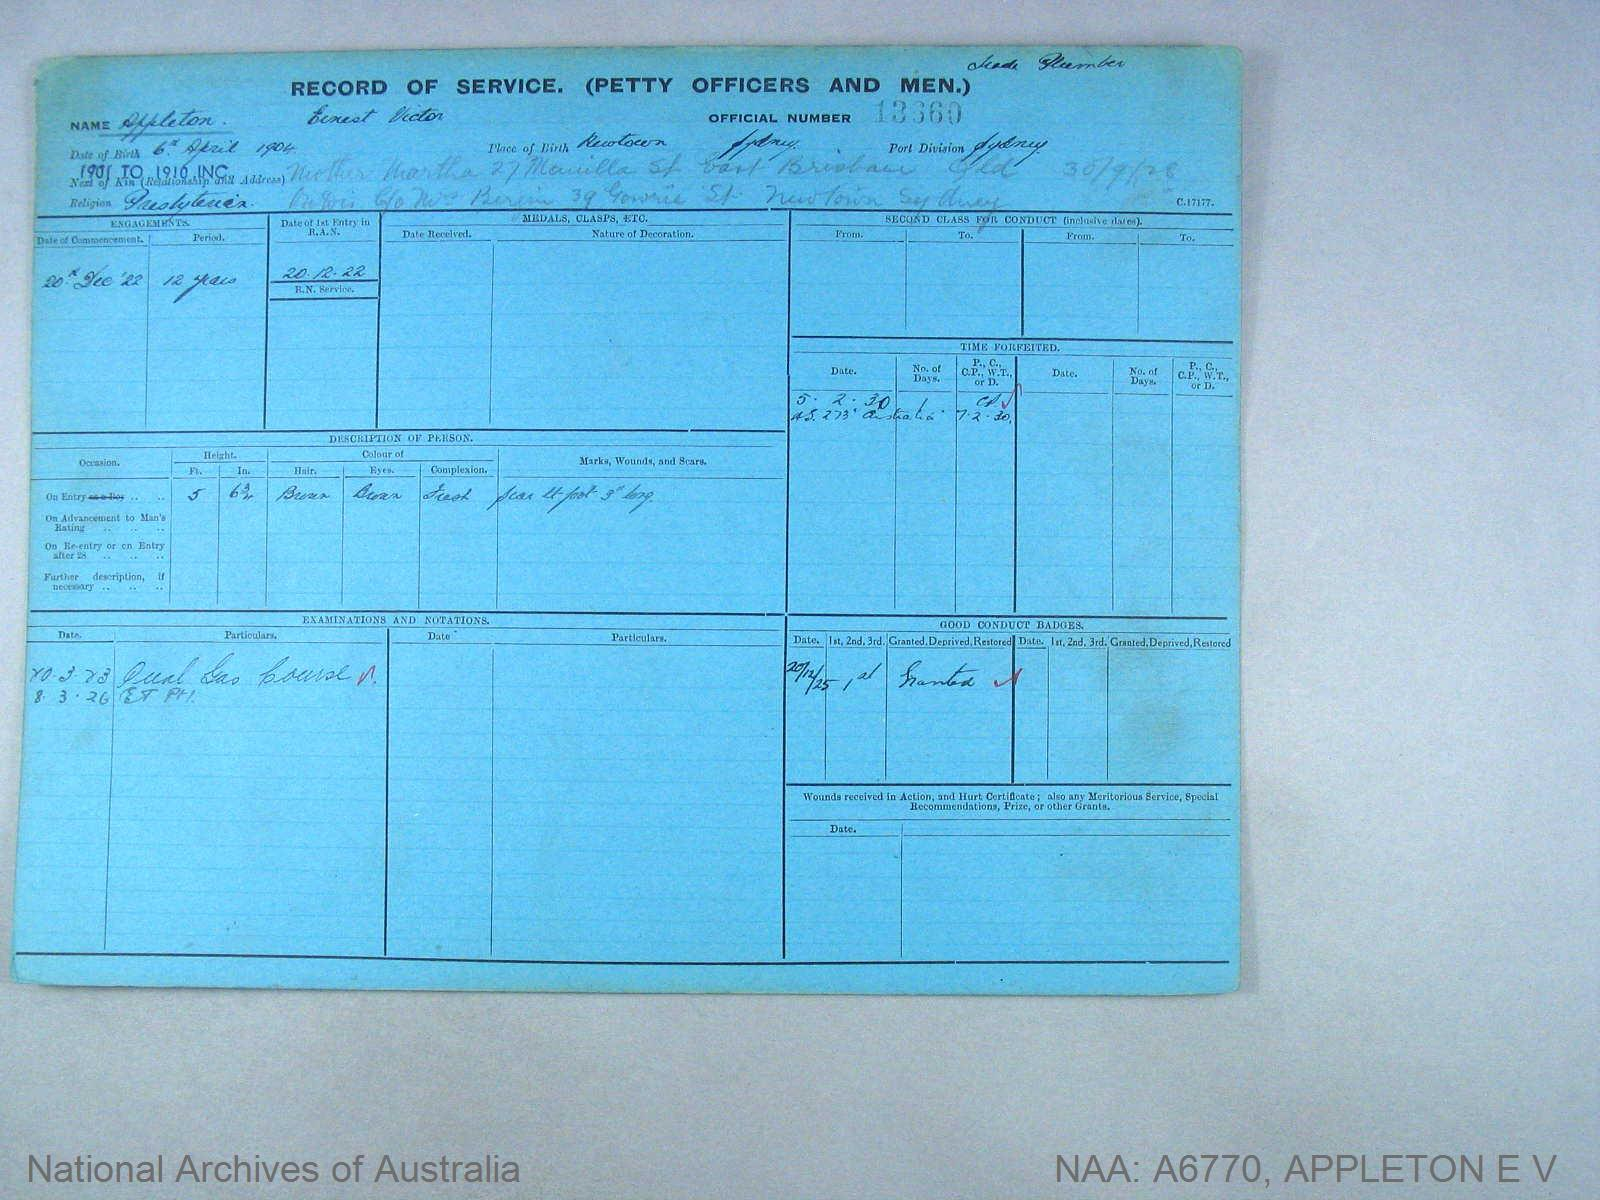 APPLETON ERNEST VICTOR : Service Number - 13360 : Date of birth - 06 Apr 1904 : Place of birth - NEWTOWN : Place of enlistment - SYDNEY : Next of Kin - APPLETON MARTHA